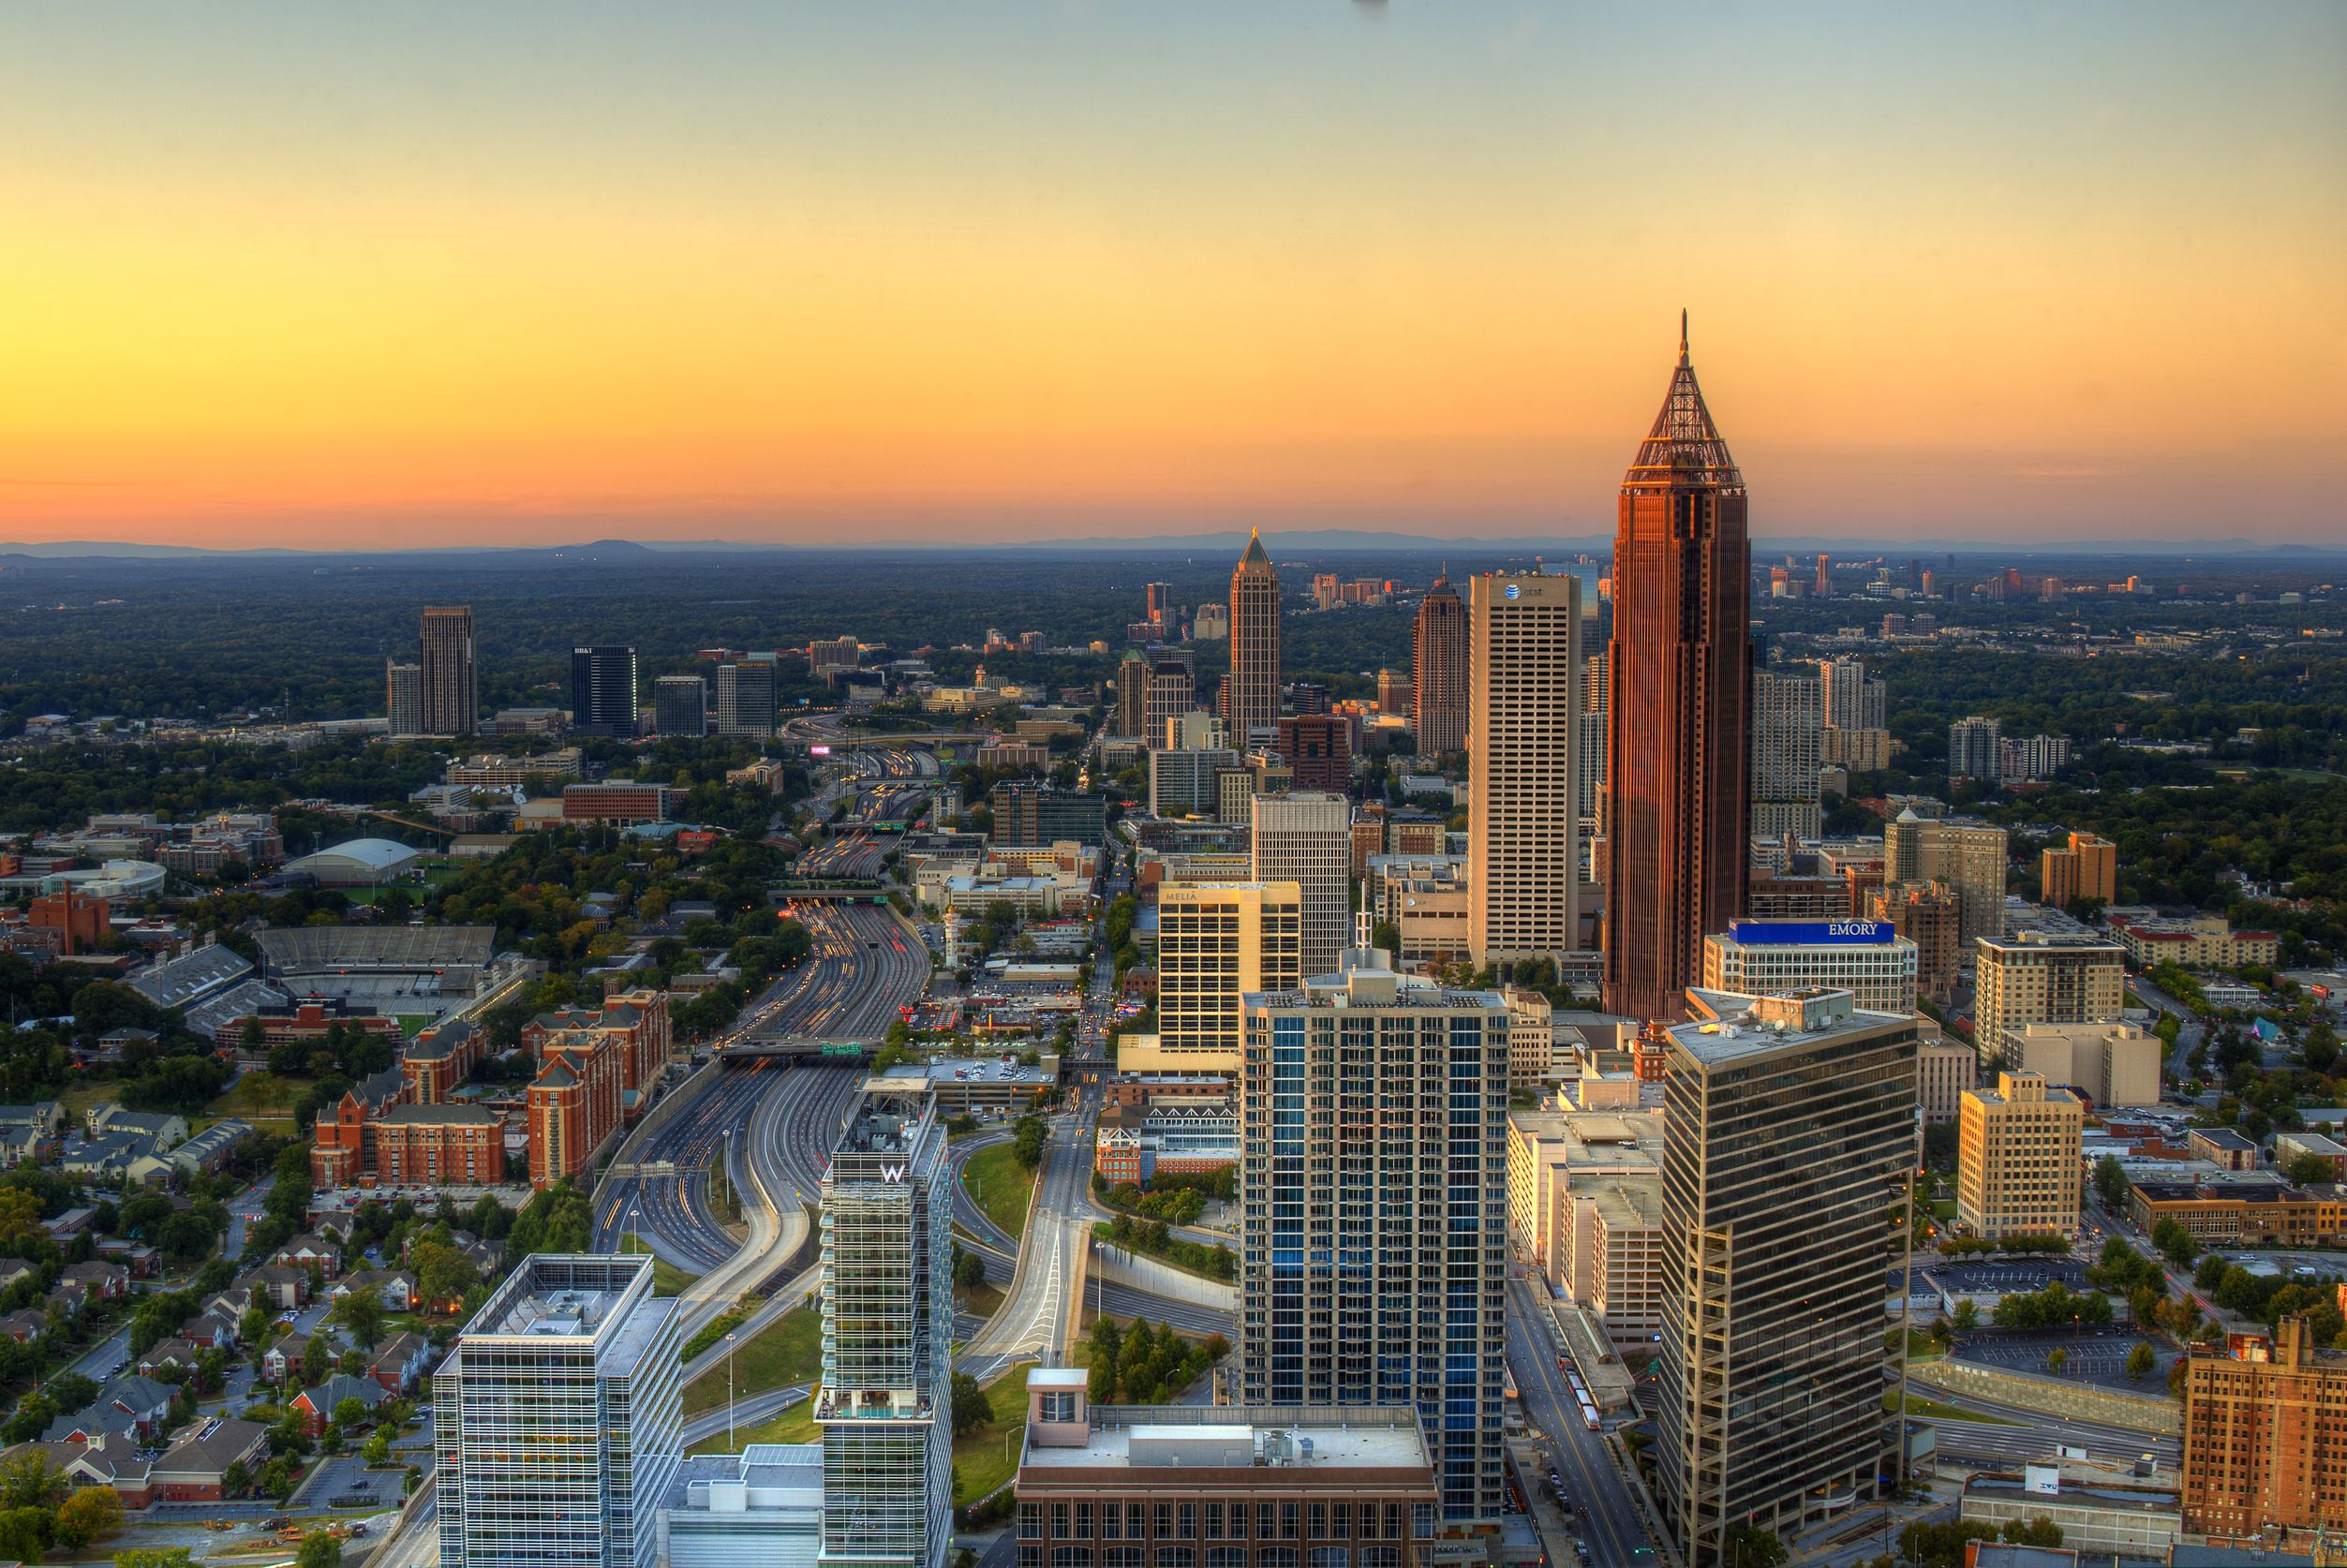 Atlanta adopts green infrastructure action plan